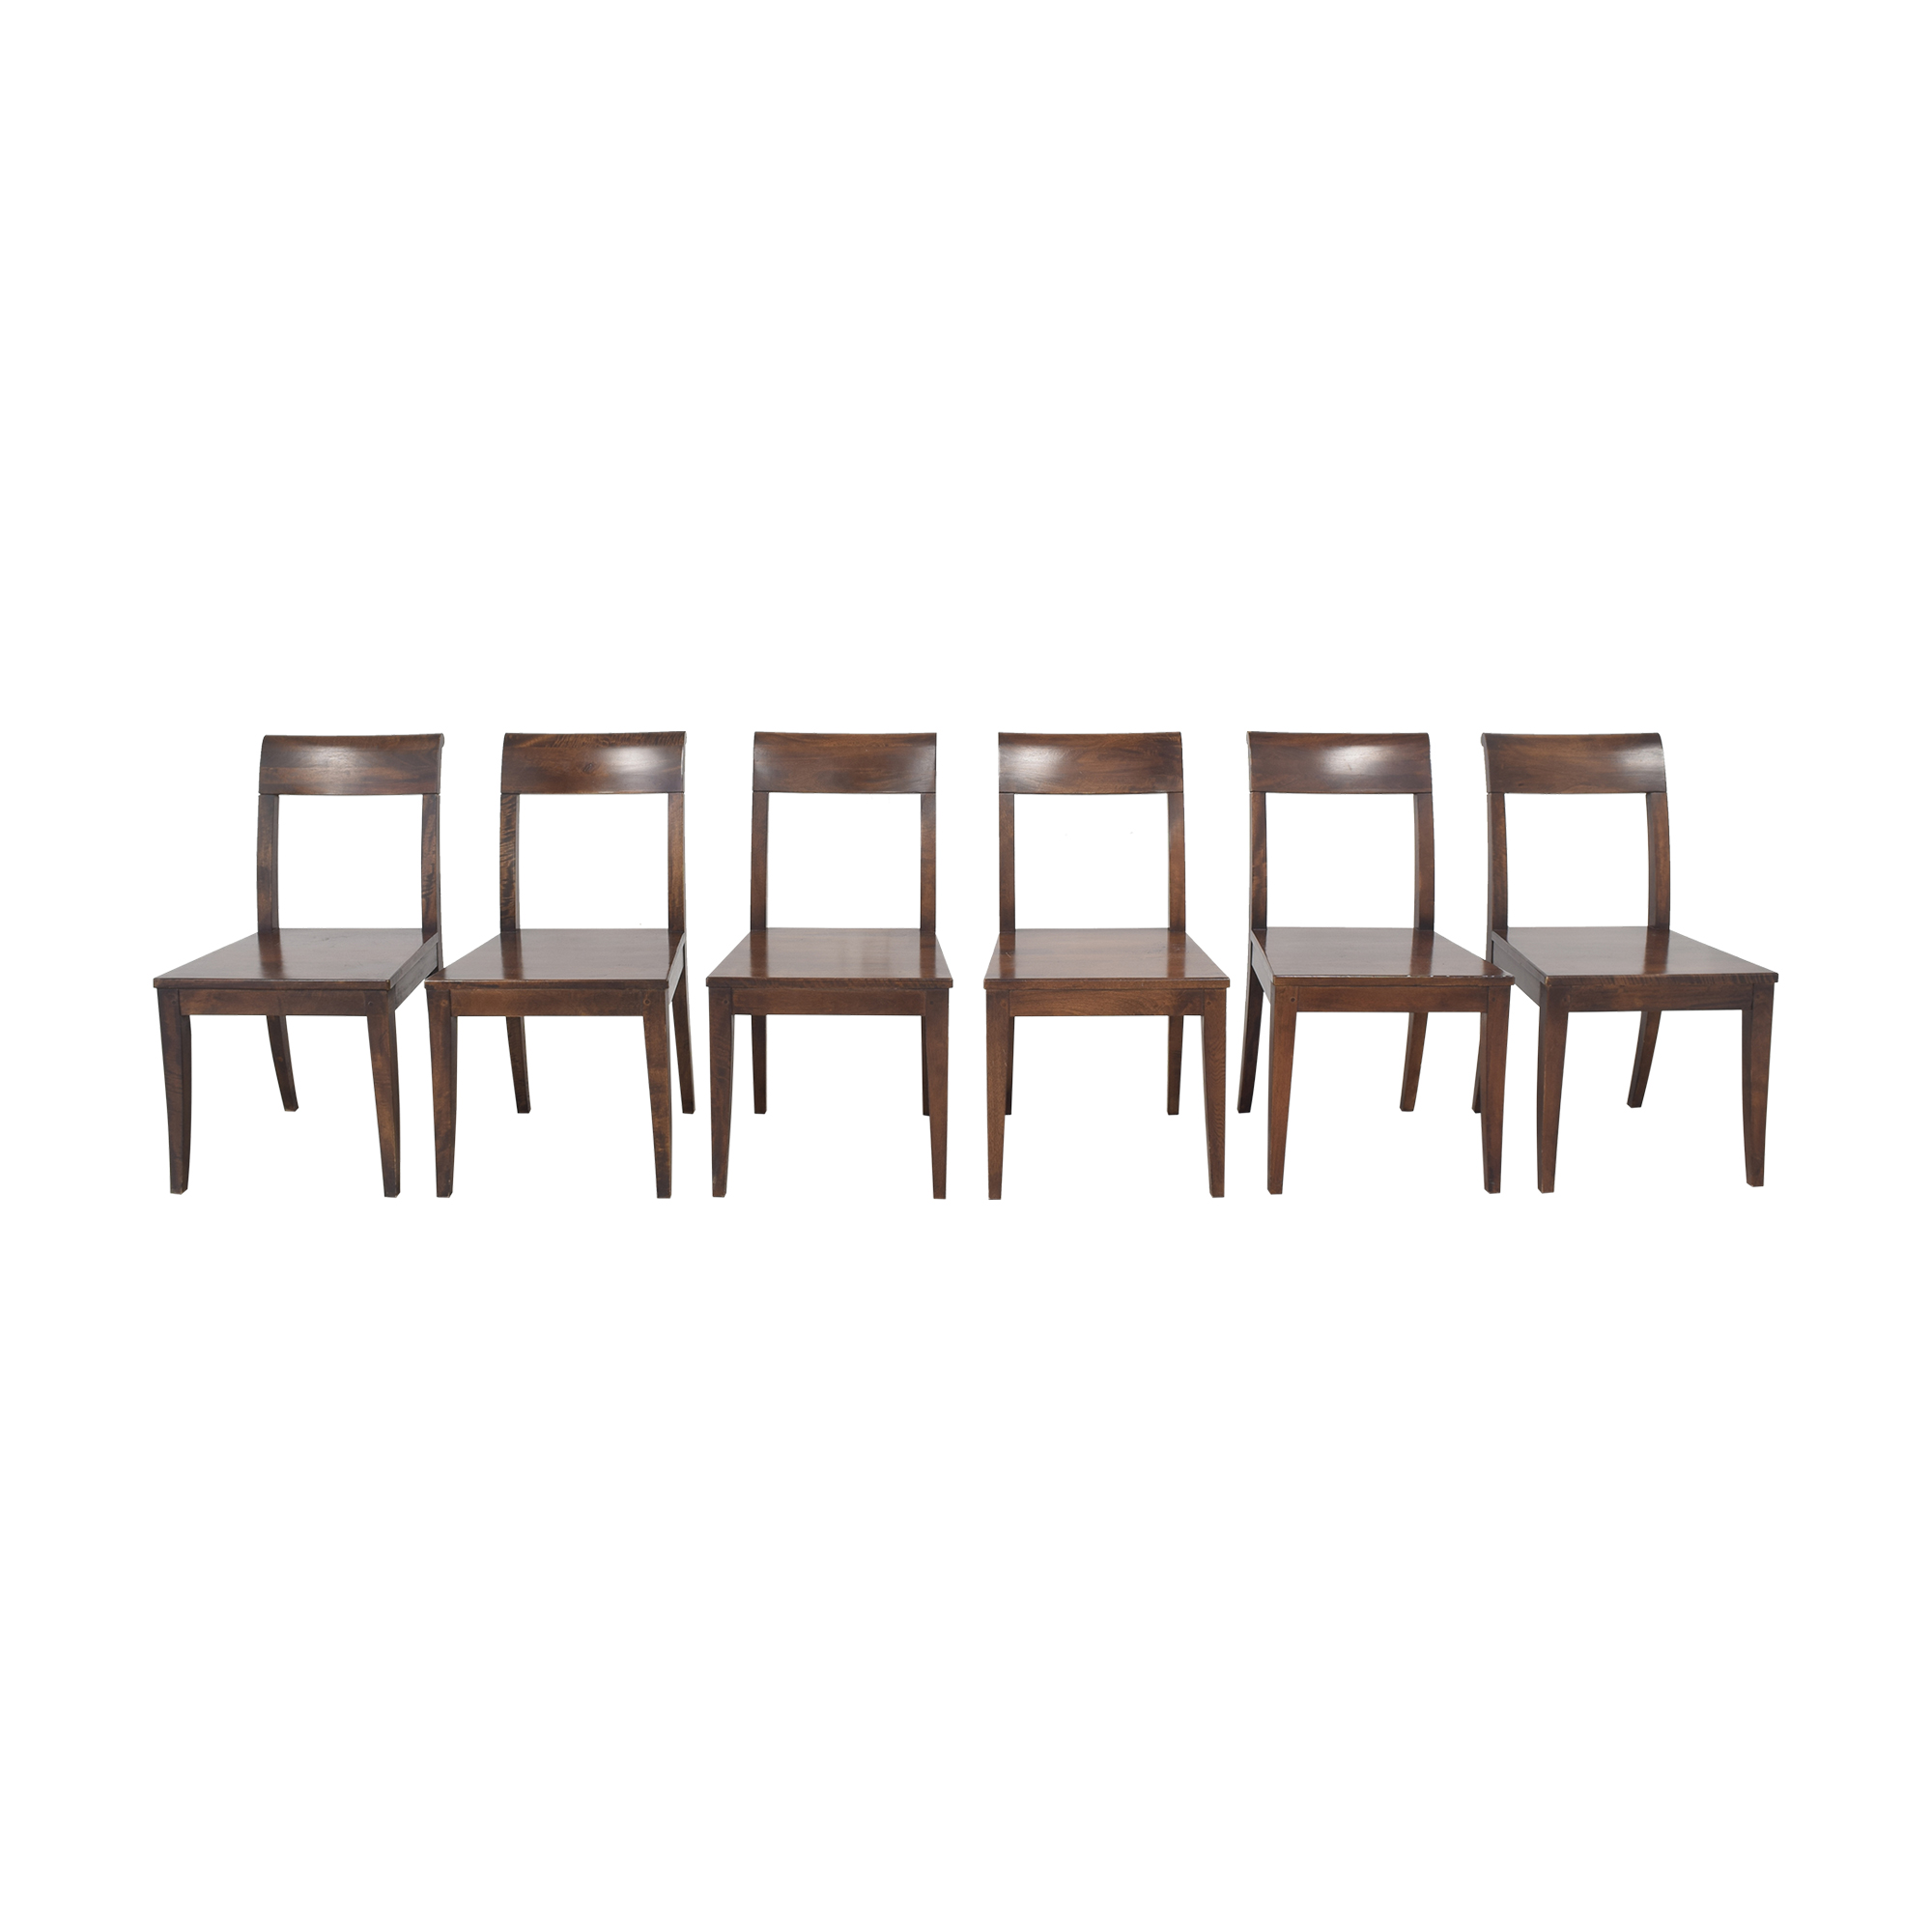 Crate & Barrel Crate & Barrel Basque Dining Chairs for sale